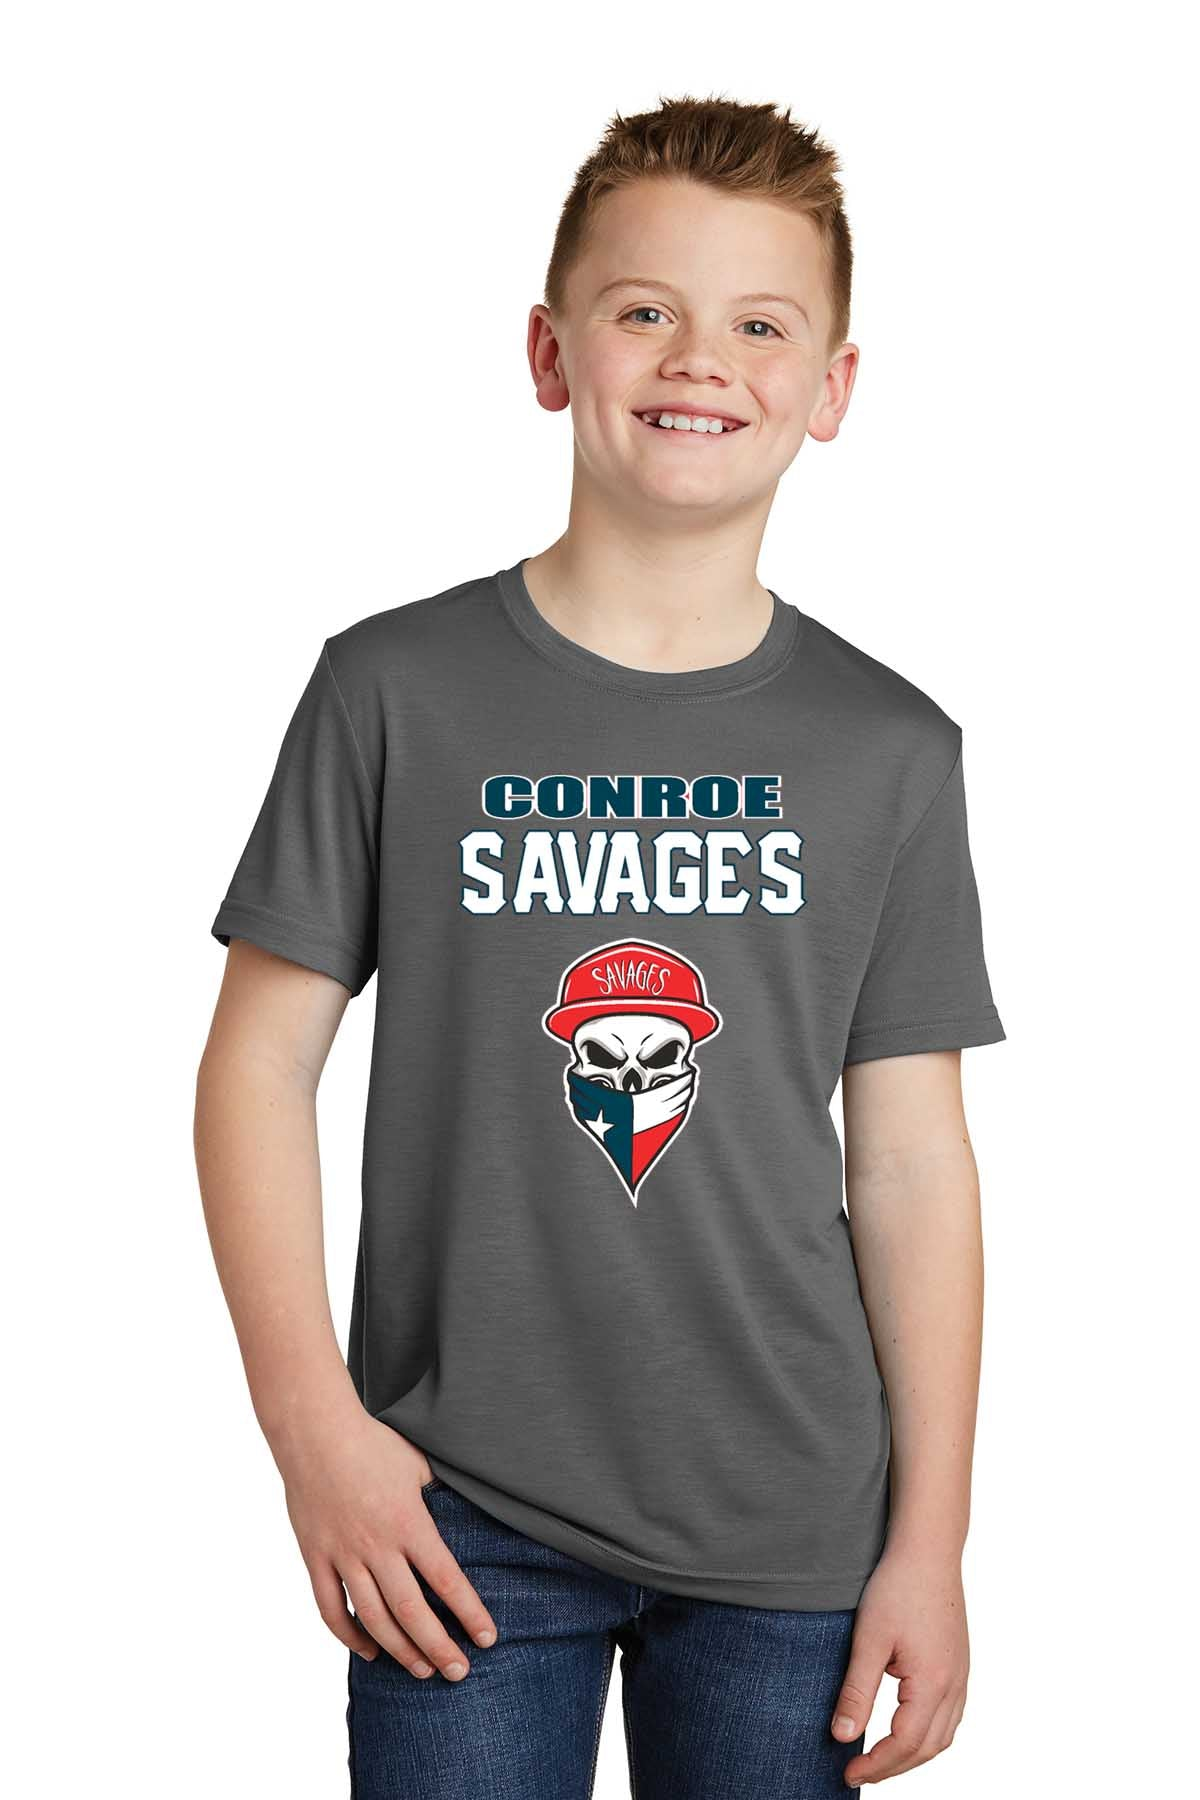 YST450 Sport-Tek® Youth PosiCharge® Competitor™ Cotton Touch™ Tee